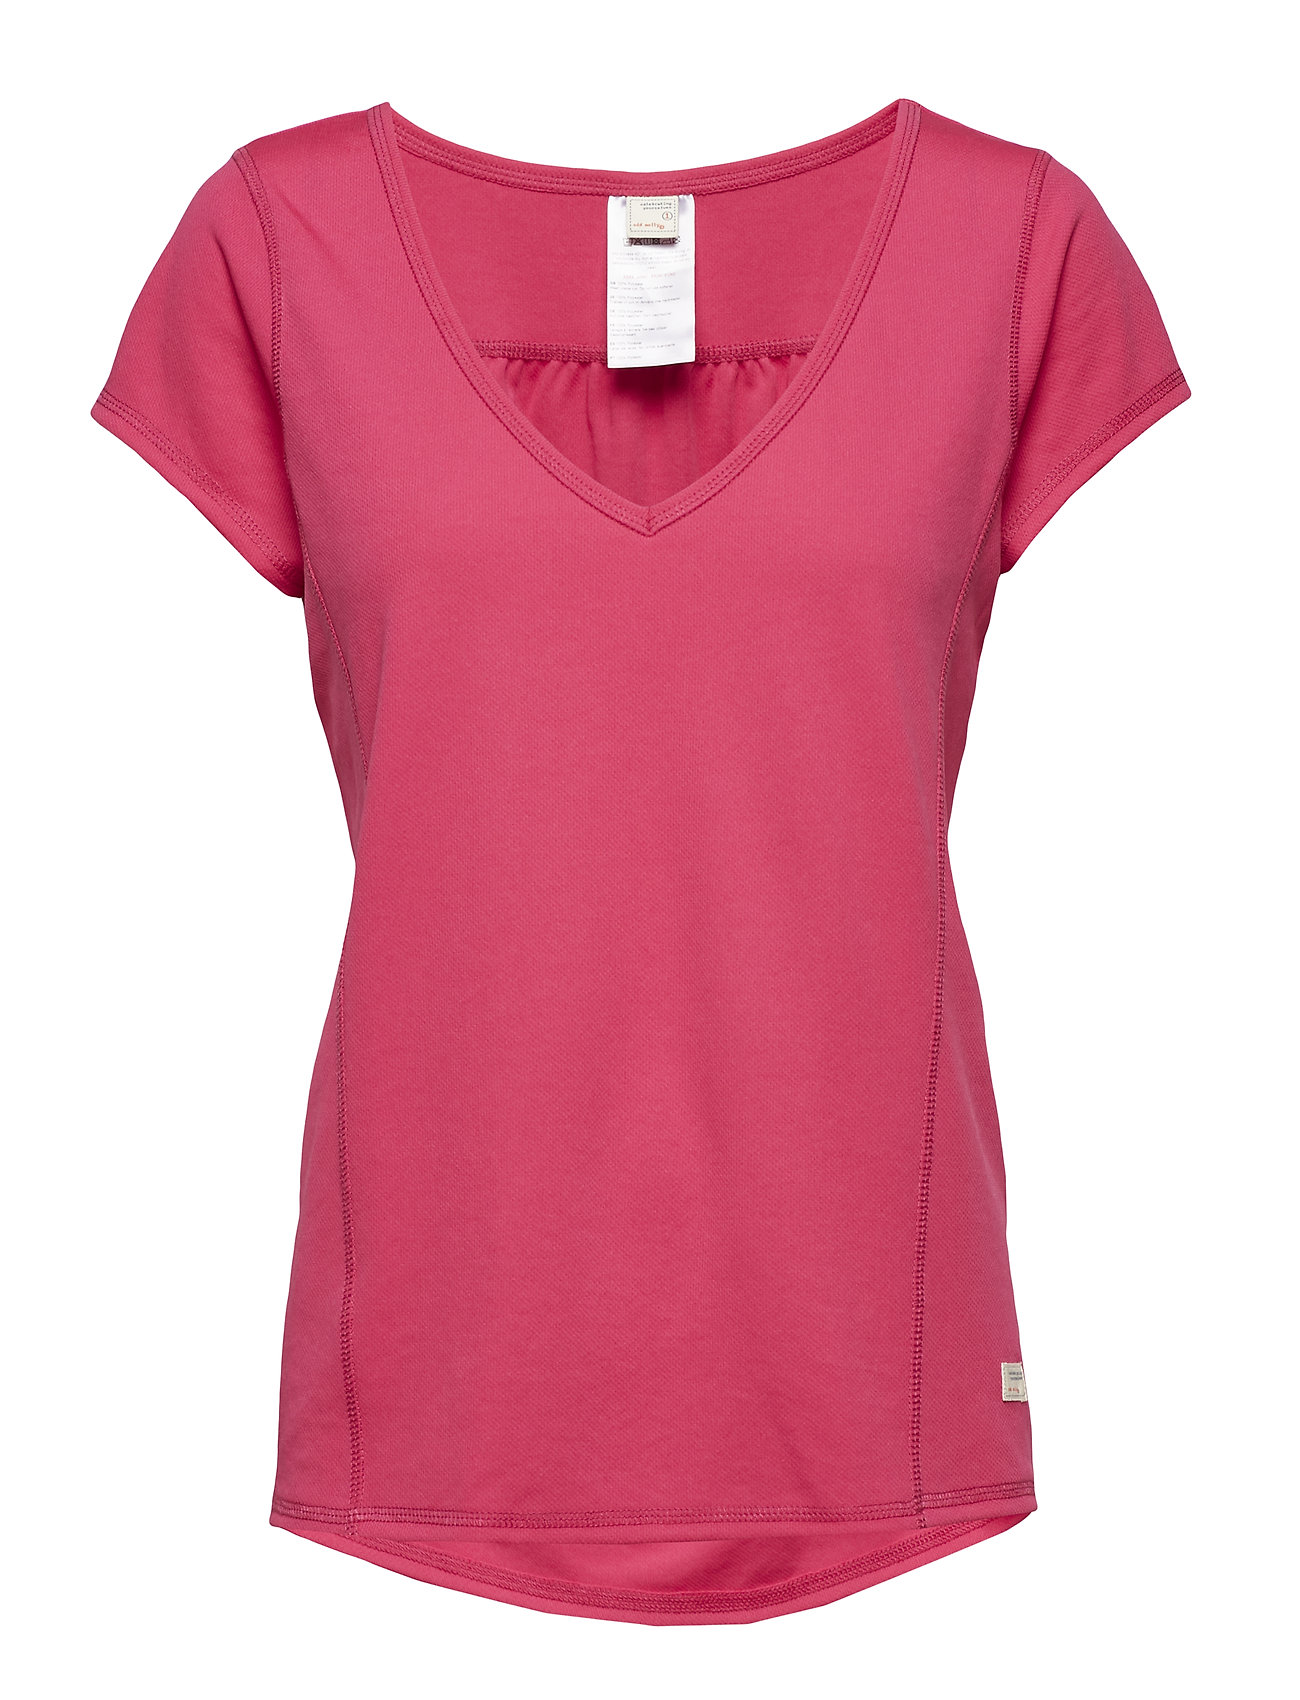 ODD MOLLY ACTIVE WEAR sprinter top